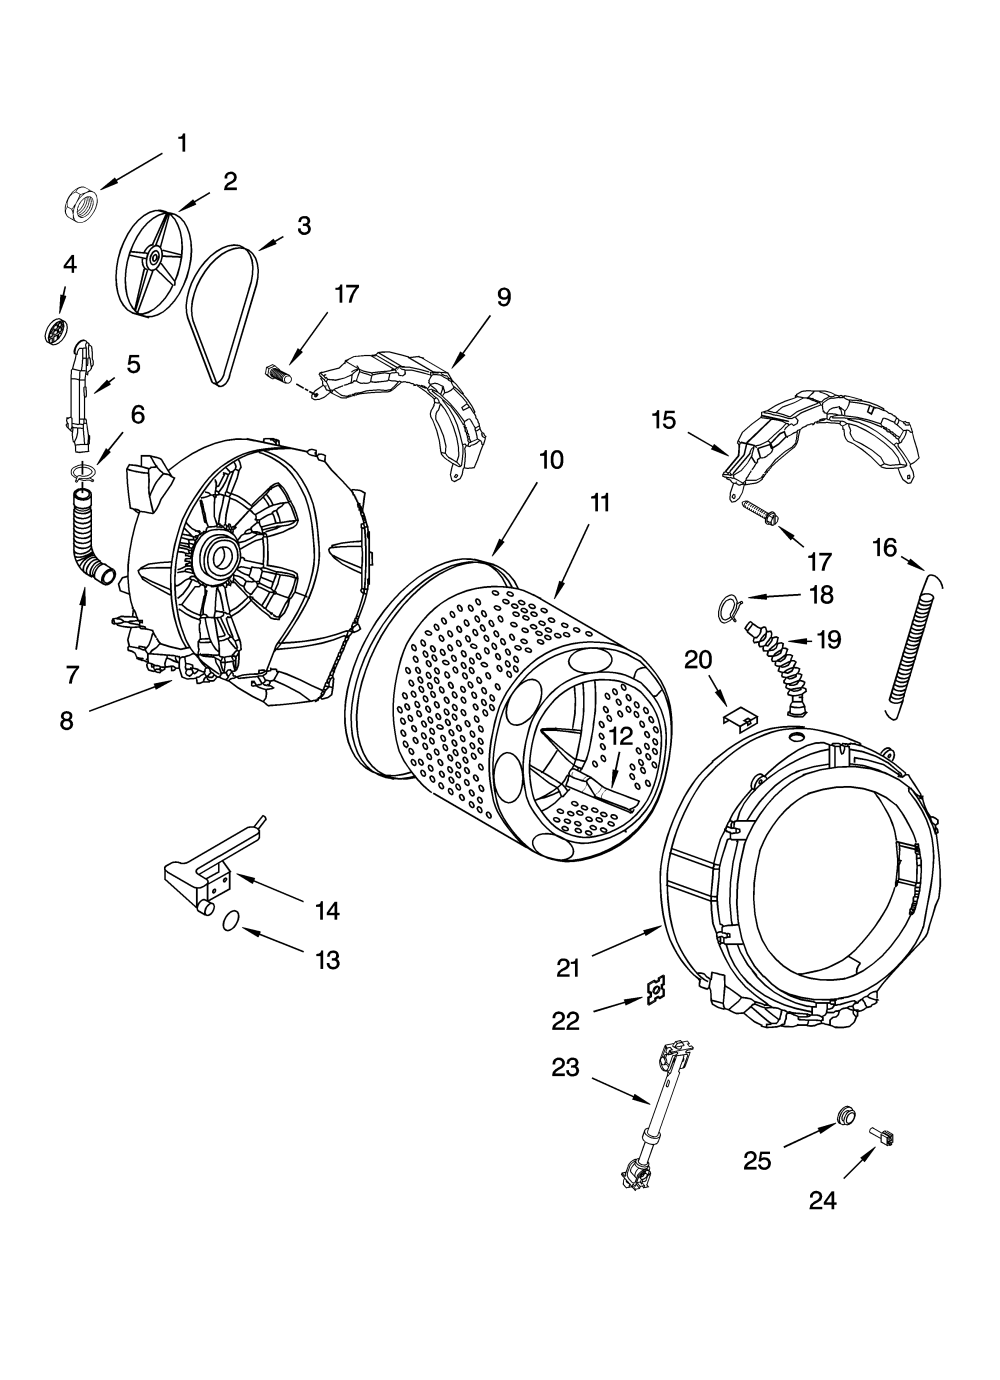 medium resolution of whirlpool ghw9150pw4 tub and basket parts diagram